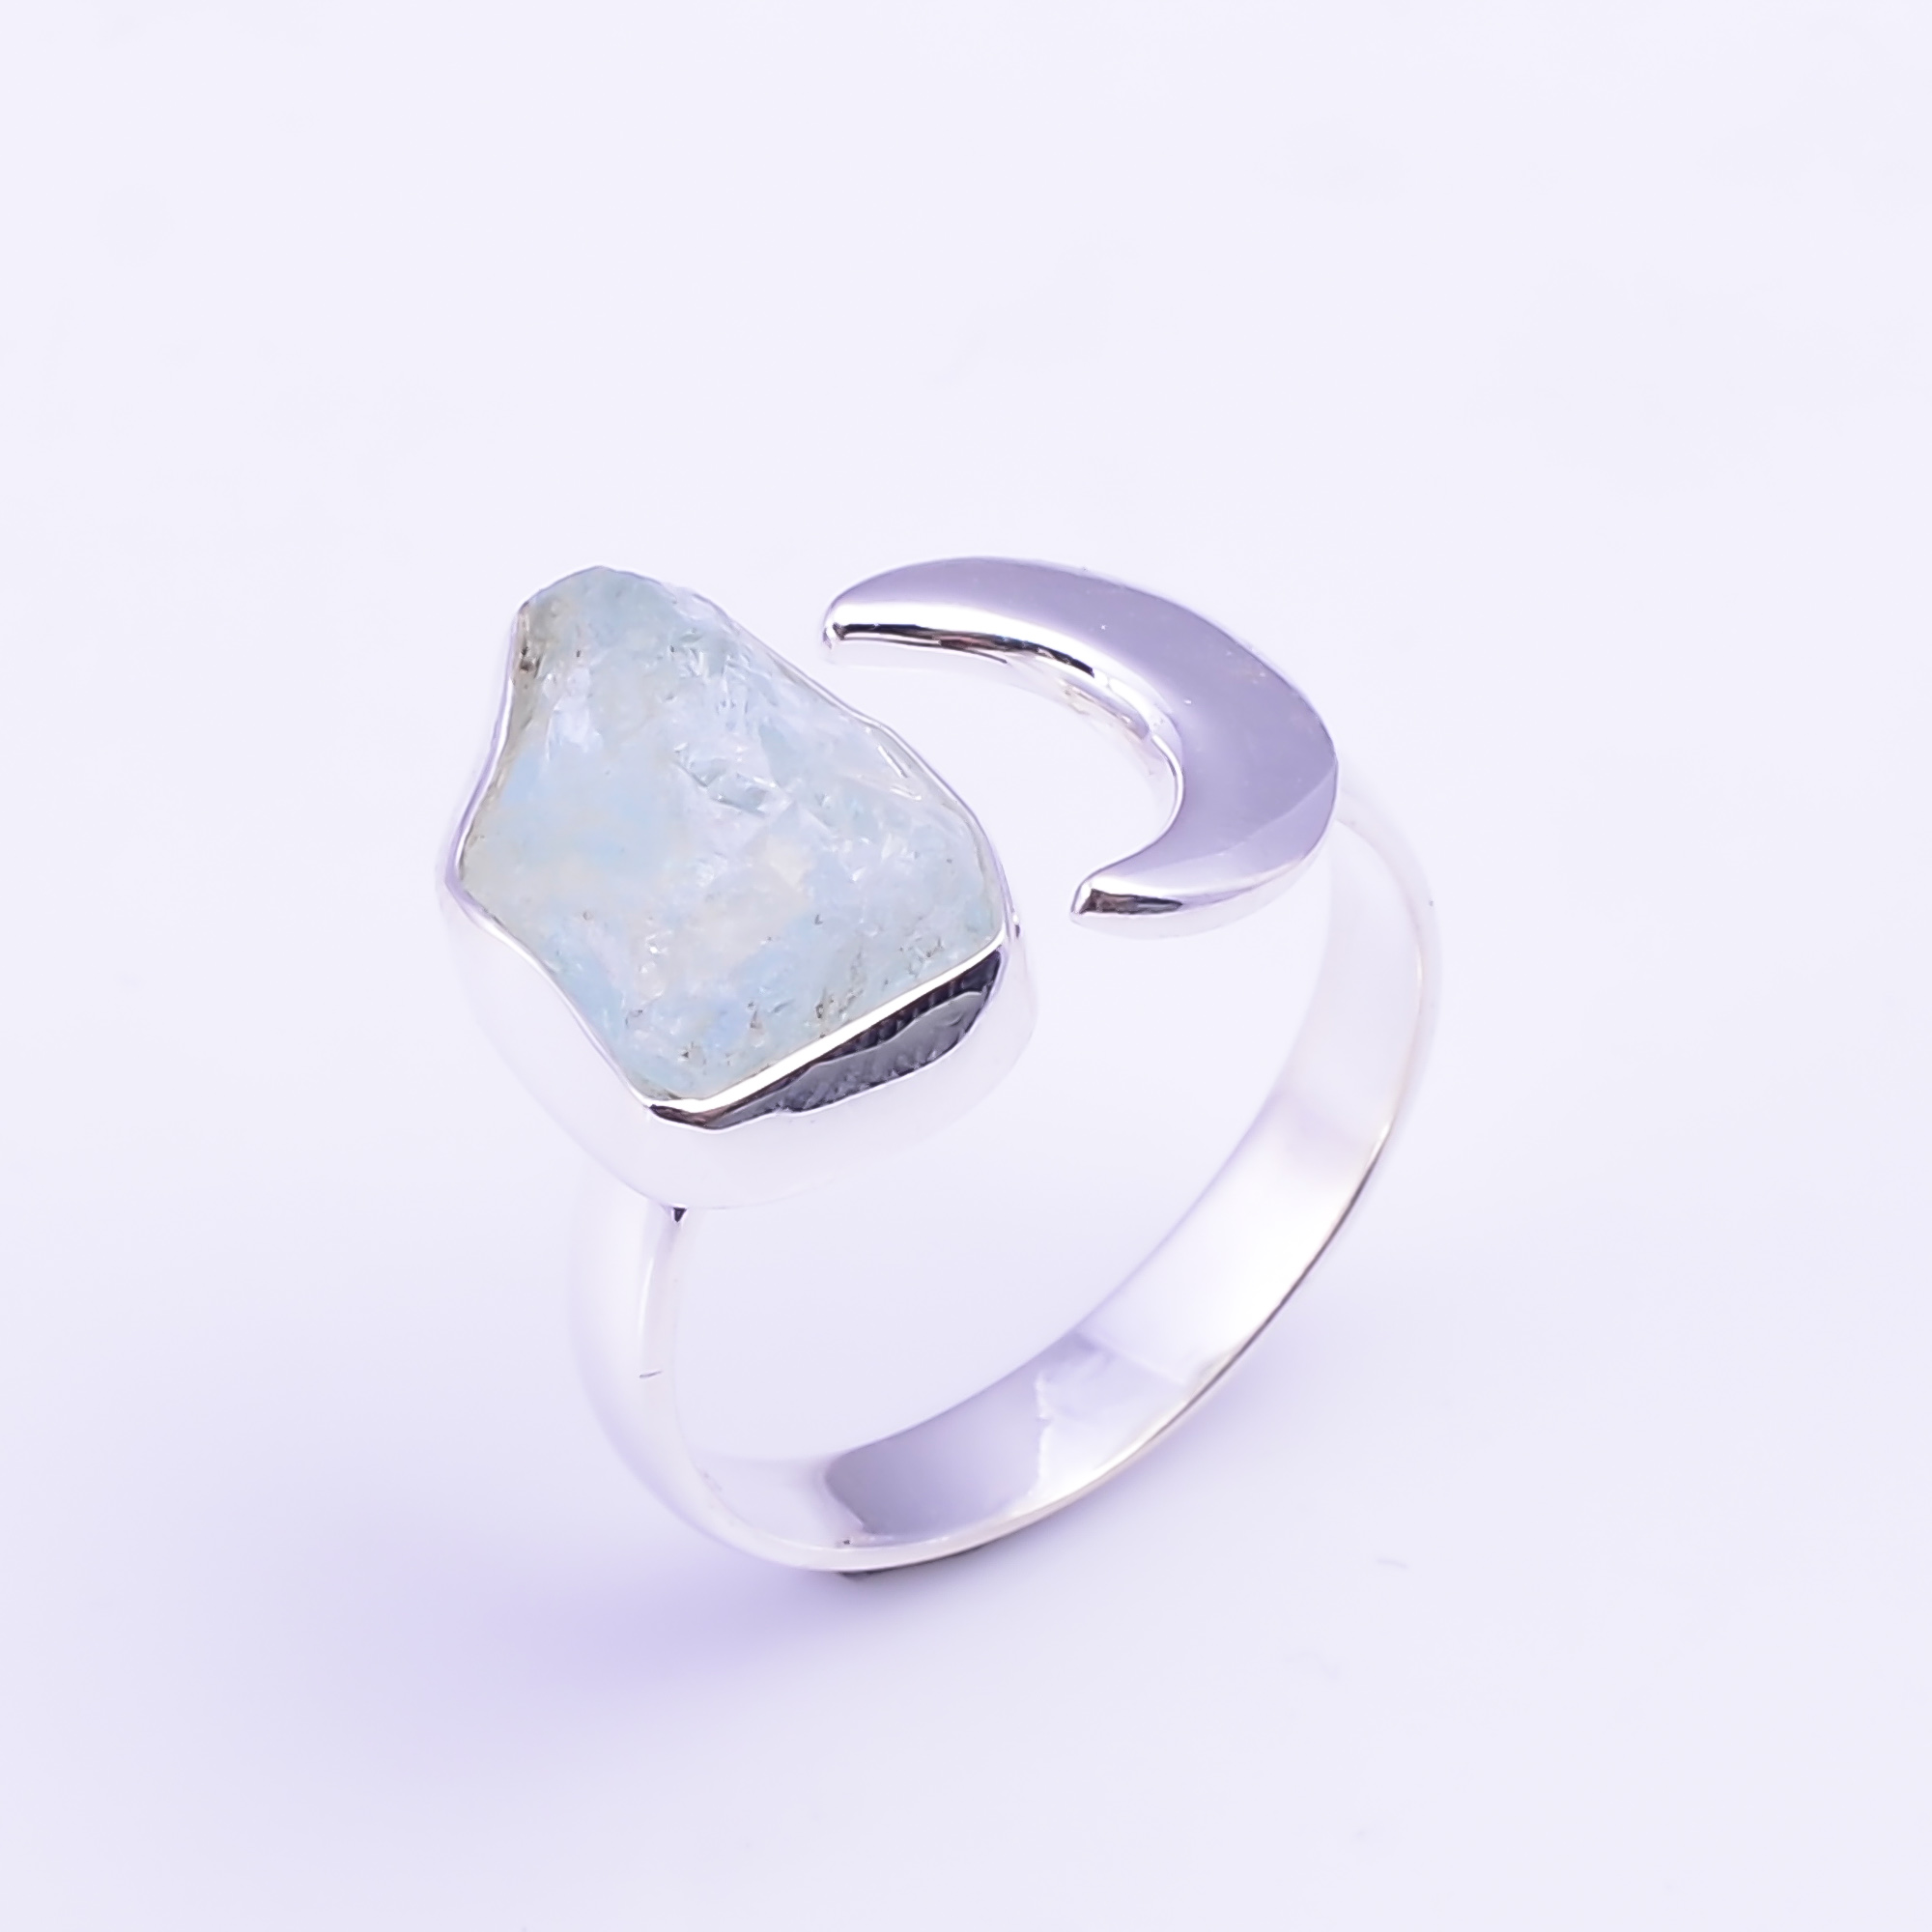 Raw Aquamarine Gemstone 925 Sterling Silver Ring Size US 8.25 Adjustable